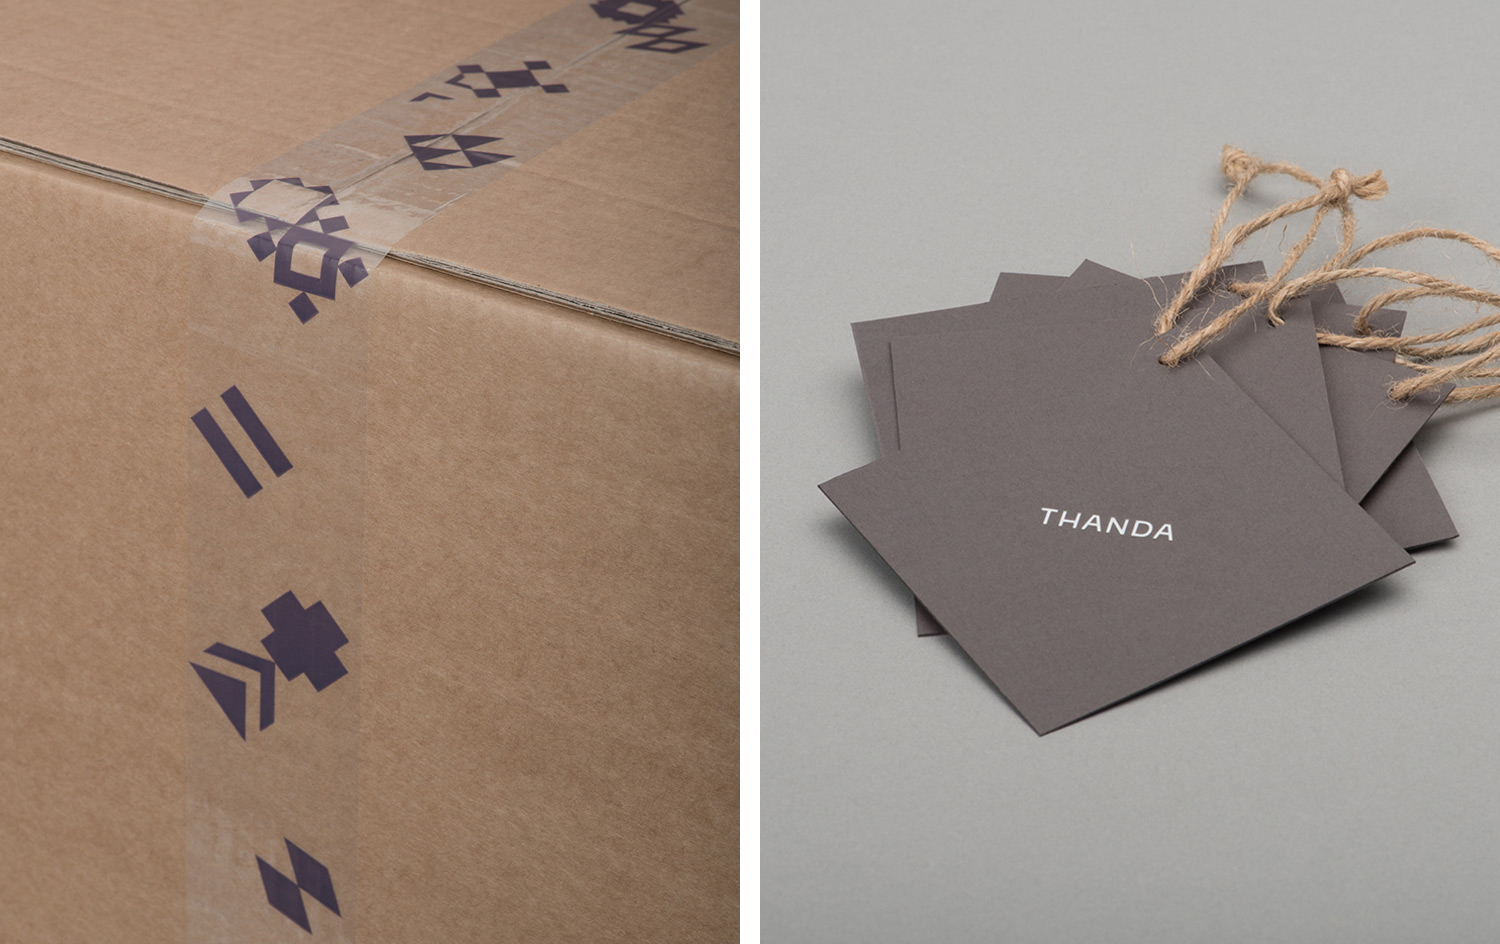 Brand identity, box tape, and product tags by UK graphic design studio Karoshi for conscientious interior accessory business Thanda